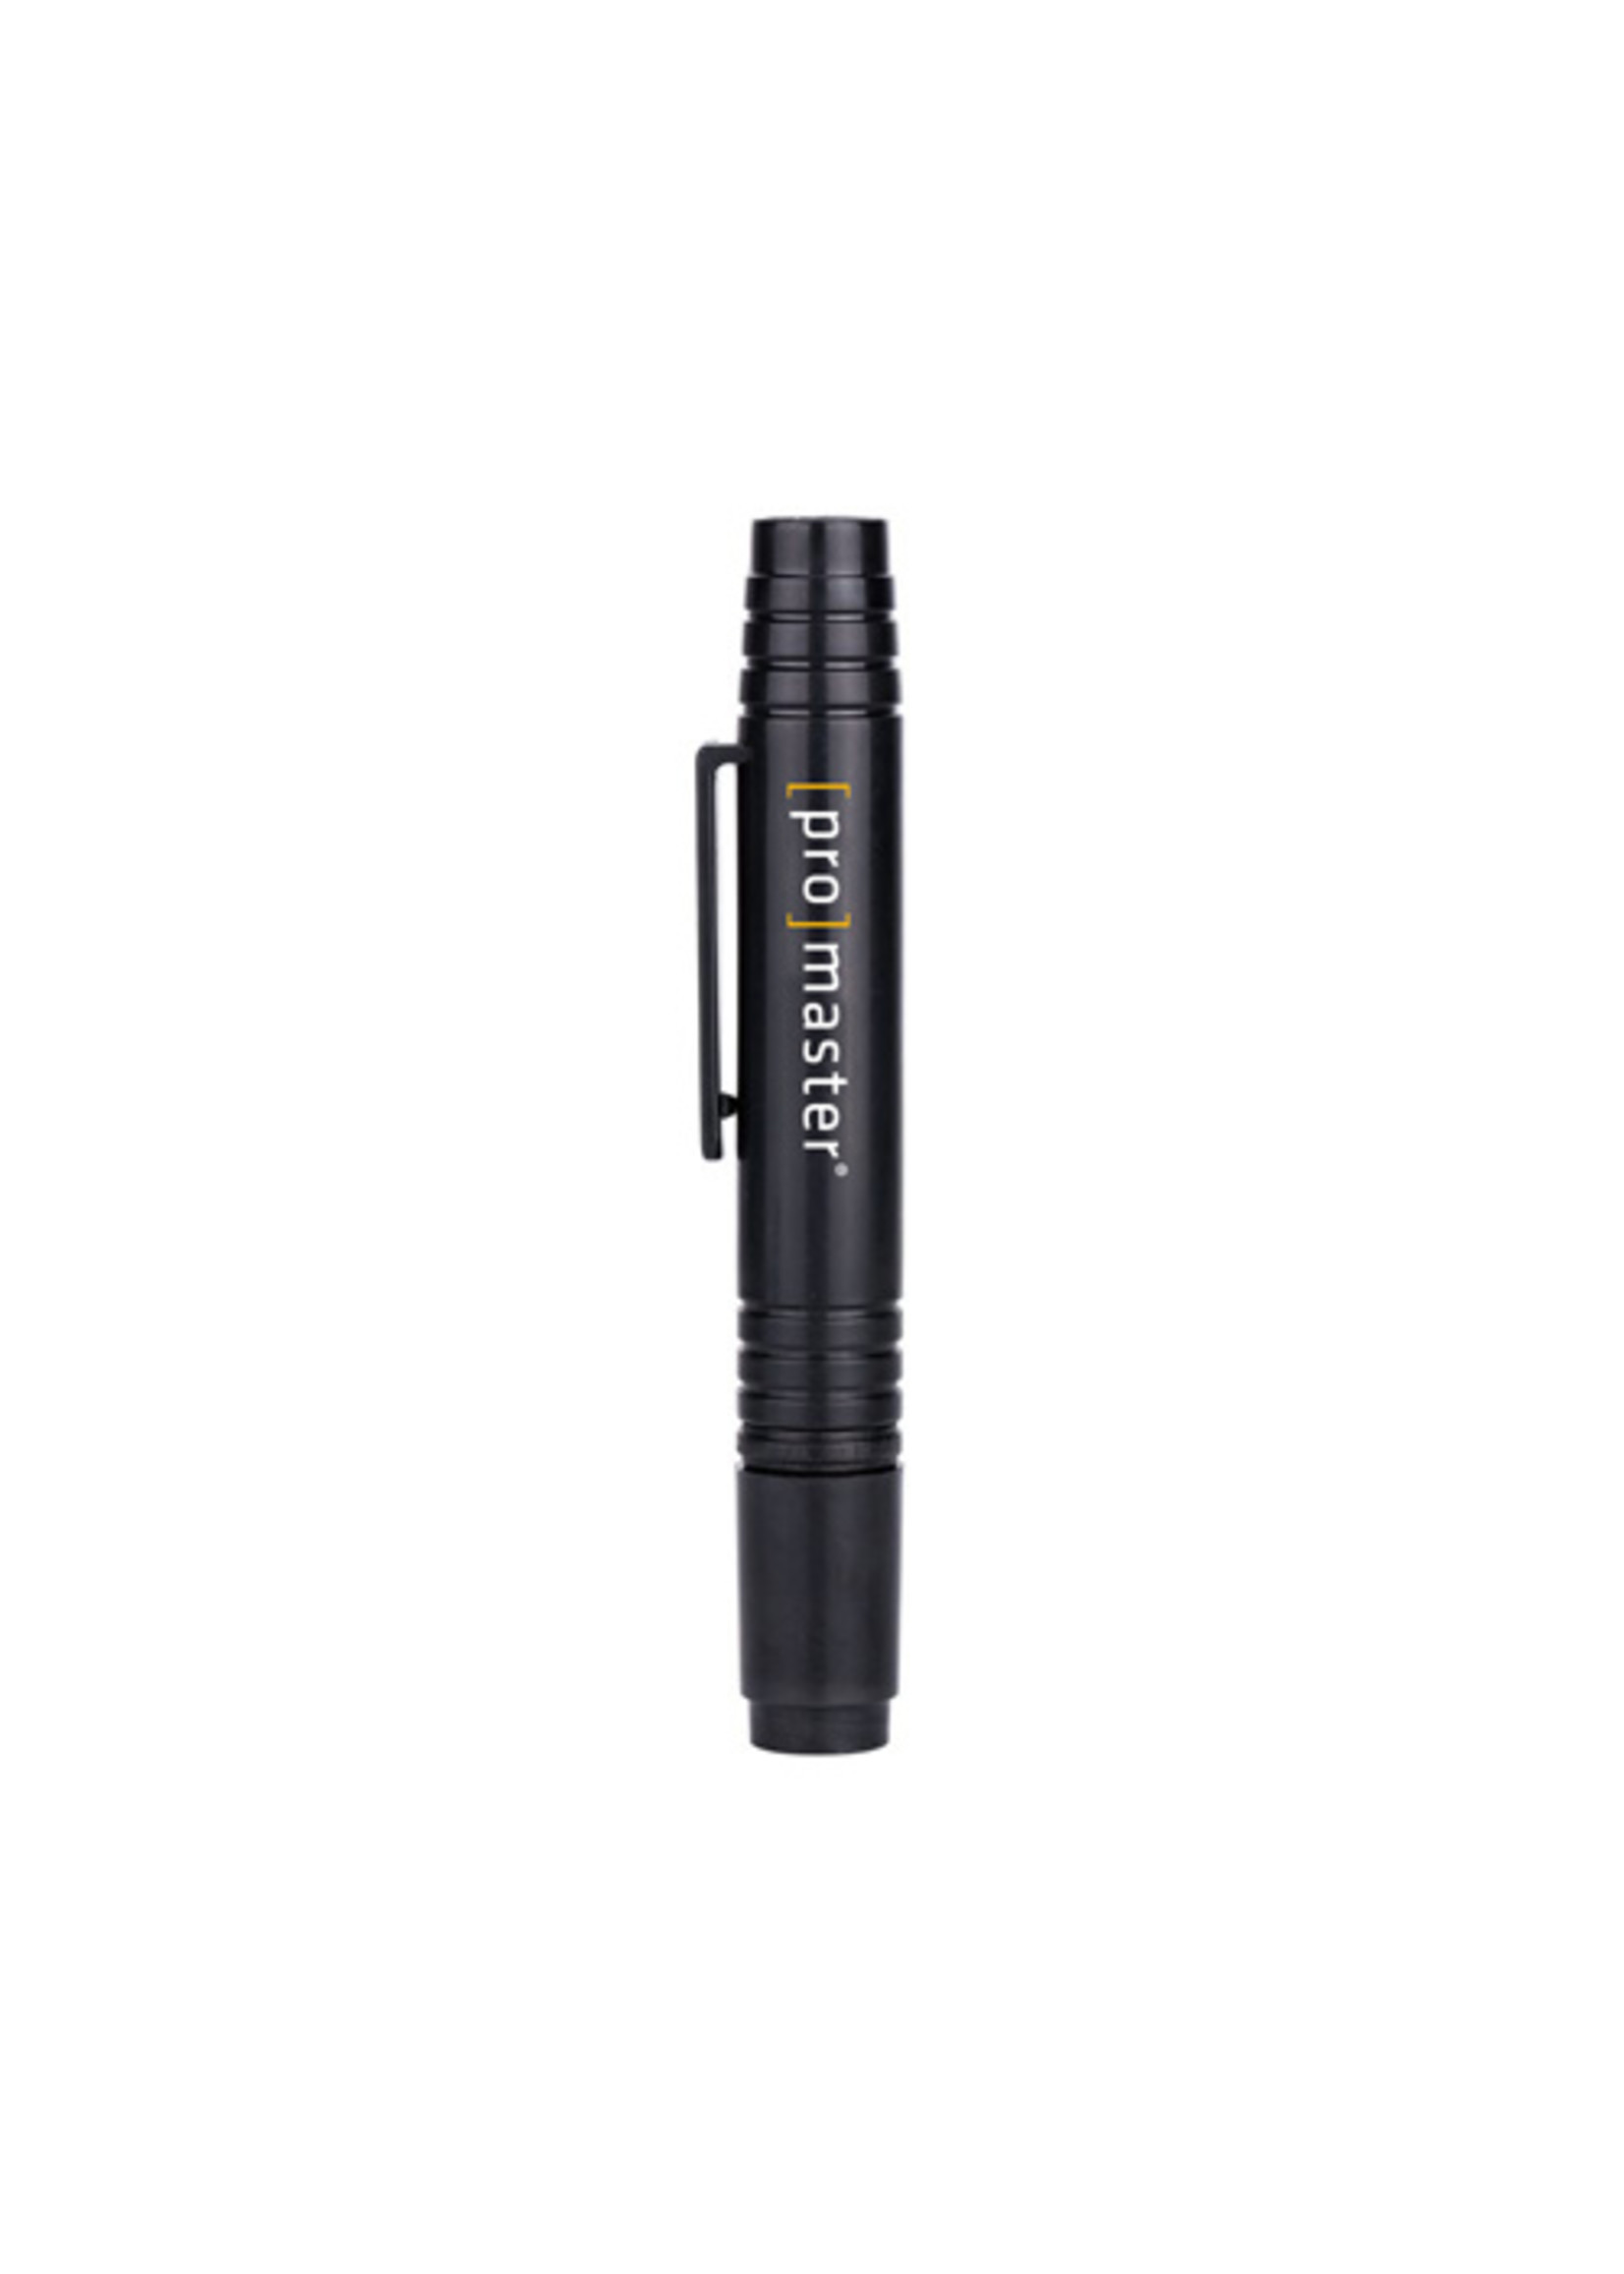 ProMaster ProMaster Cleaning Pen